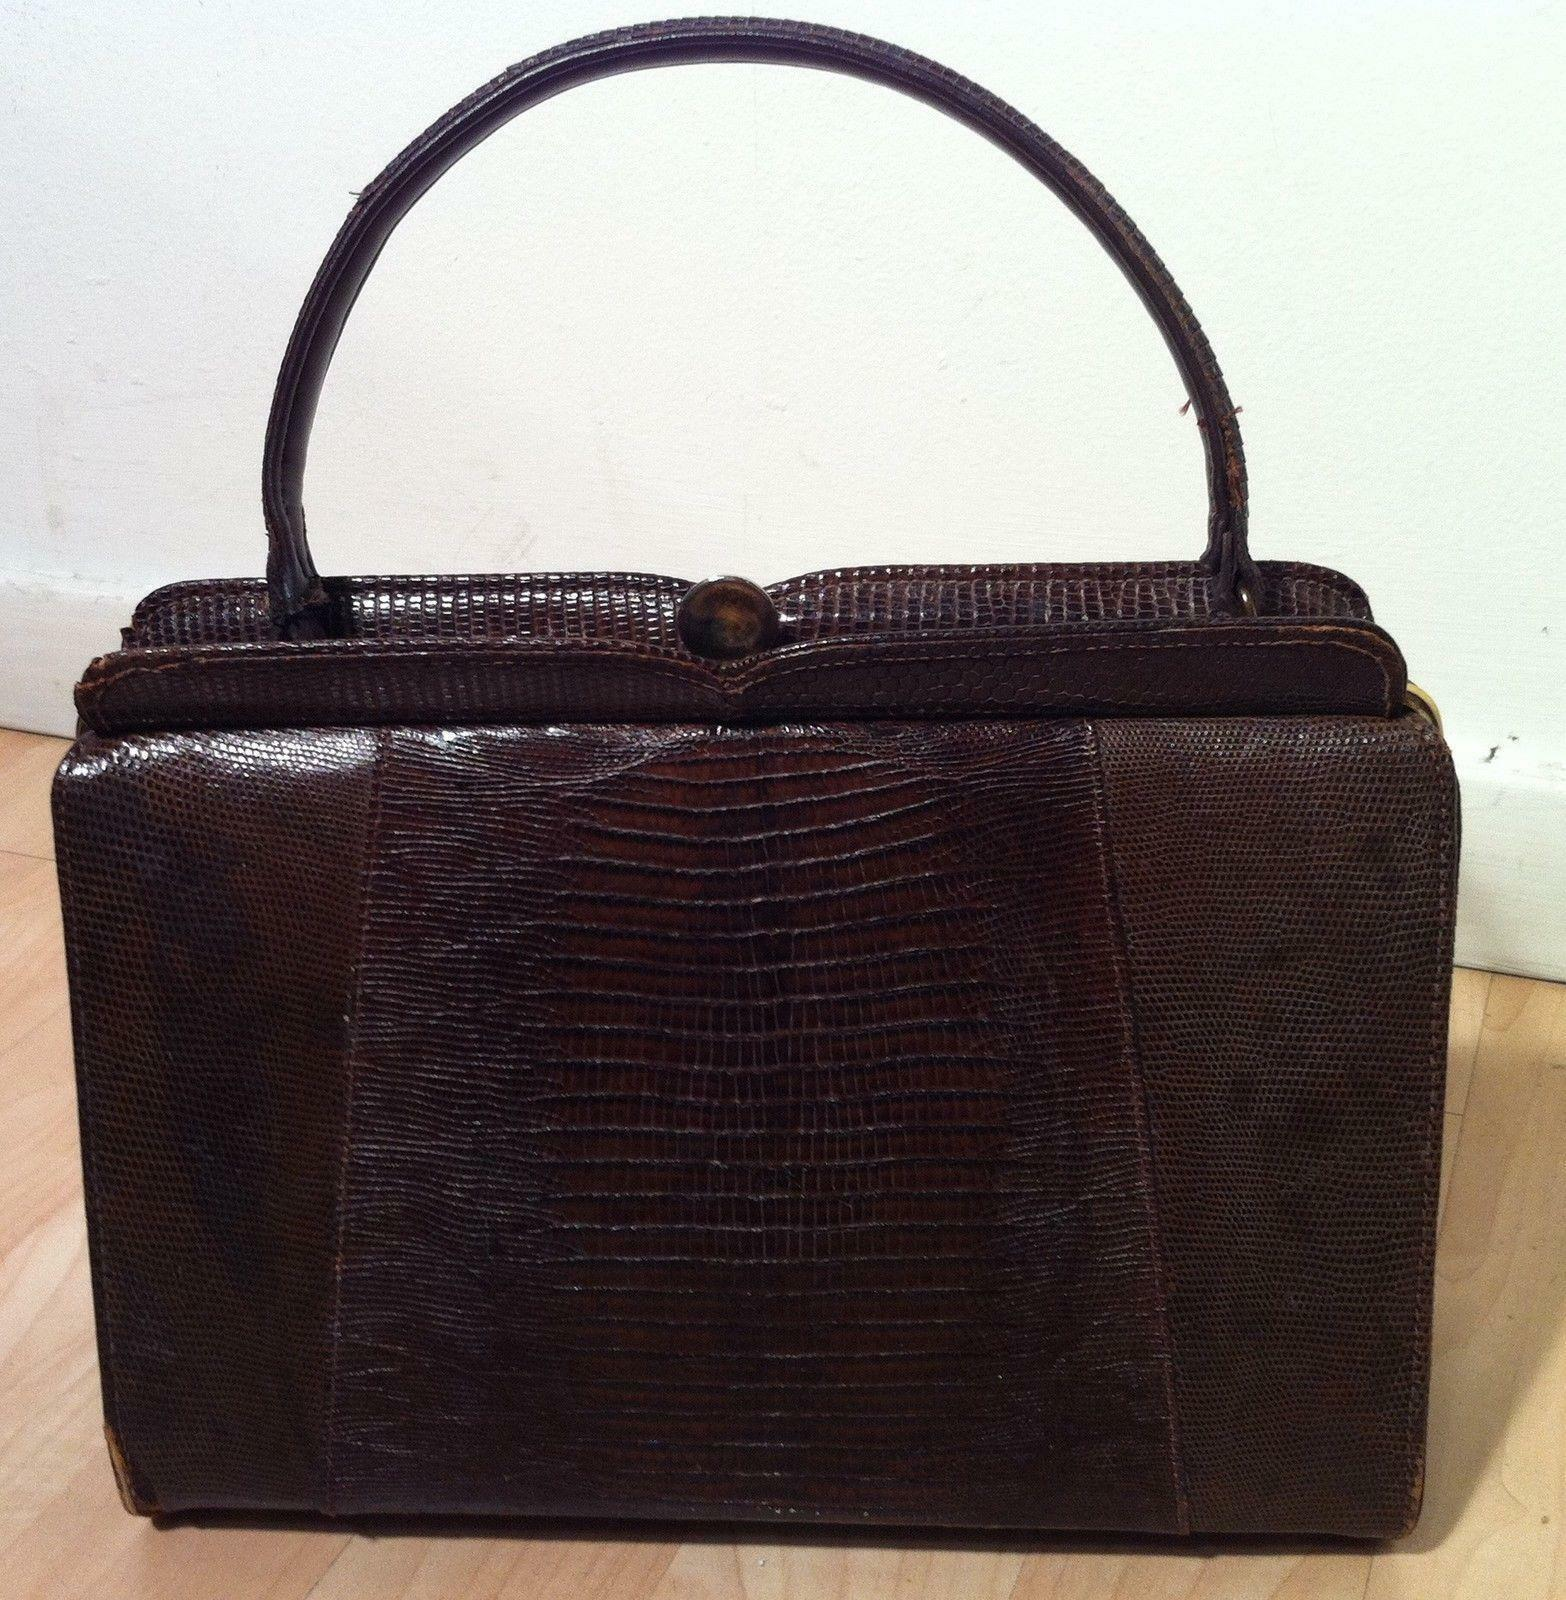 Vintage 1940 S Brown Lizard Handbag Tote Purse Evening Bag 1 Of 12only Available